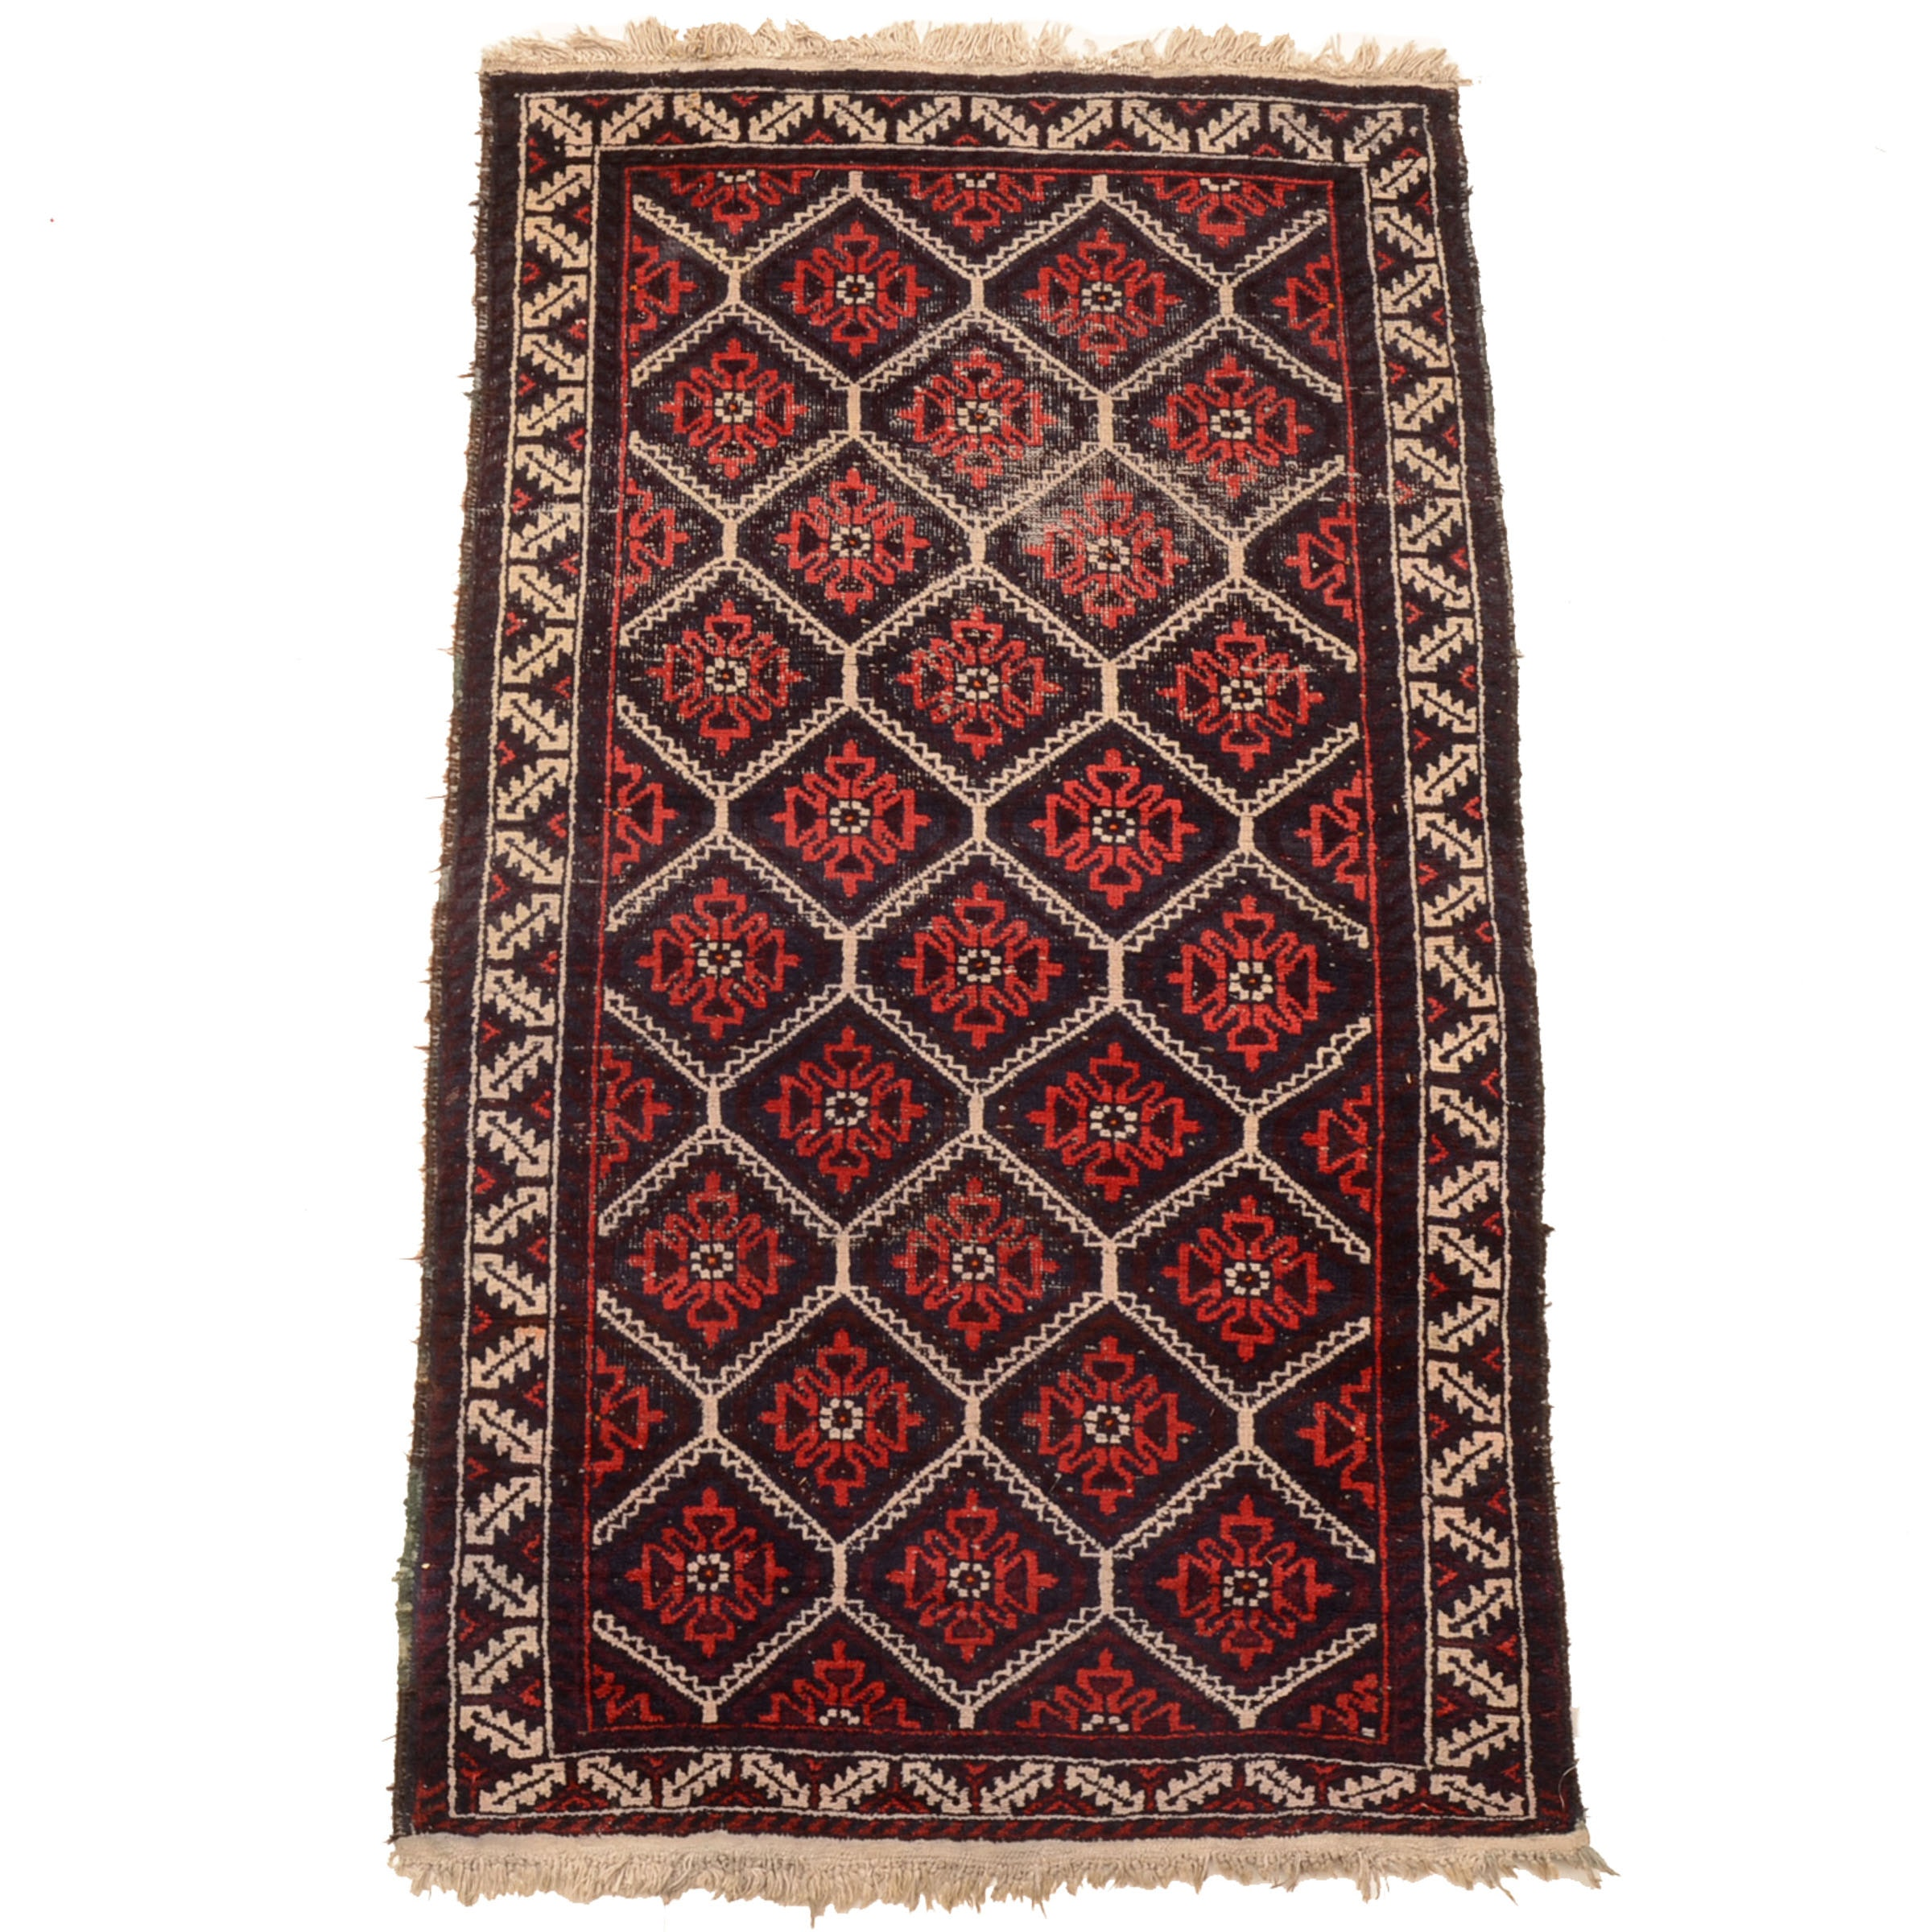 Vintage Hand-Knotted Baluch Area Rug